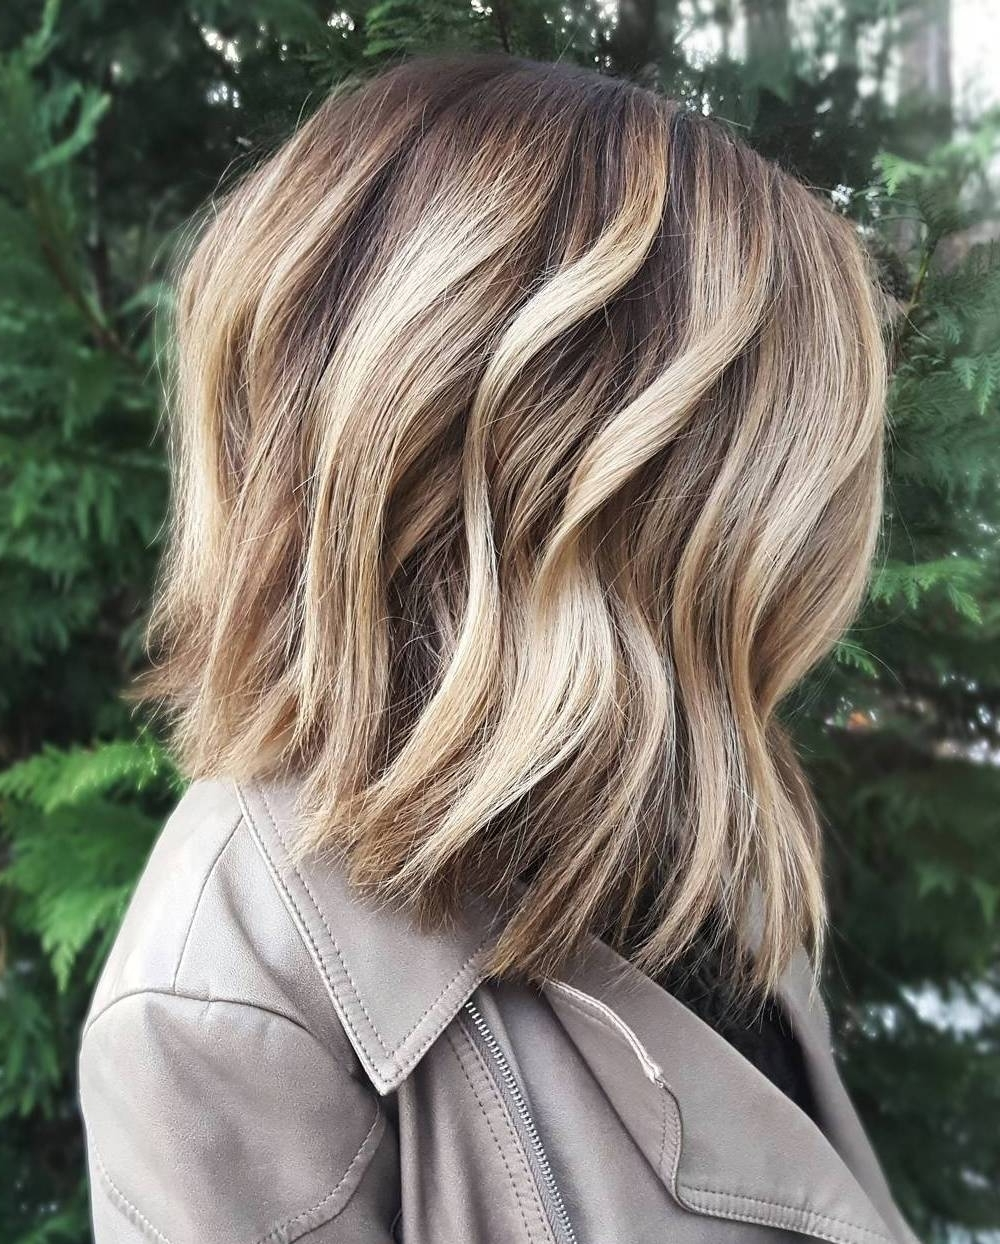 20 Dirty Blonde Hair Ideas That Work On Everyone With Well Known Dishwater Waves Blonde Hairstyles (View 2 of 20)